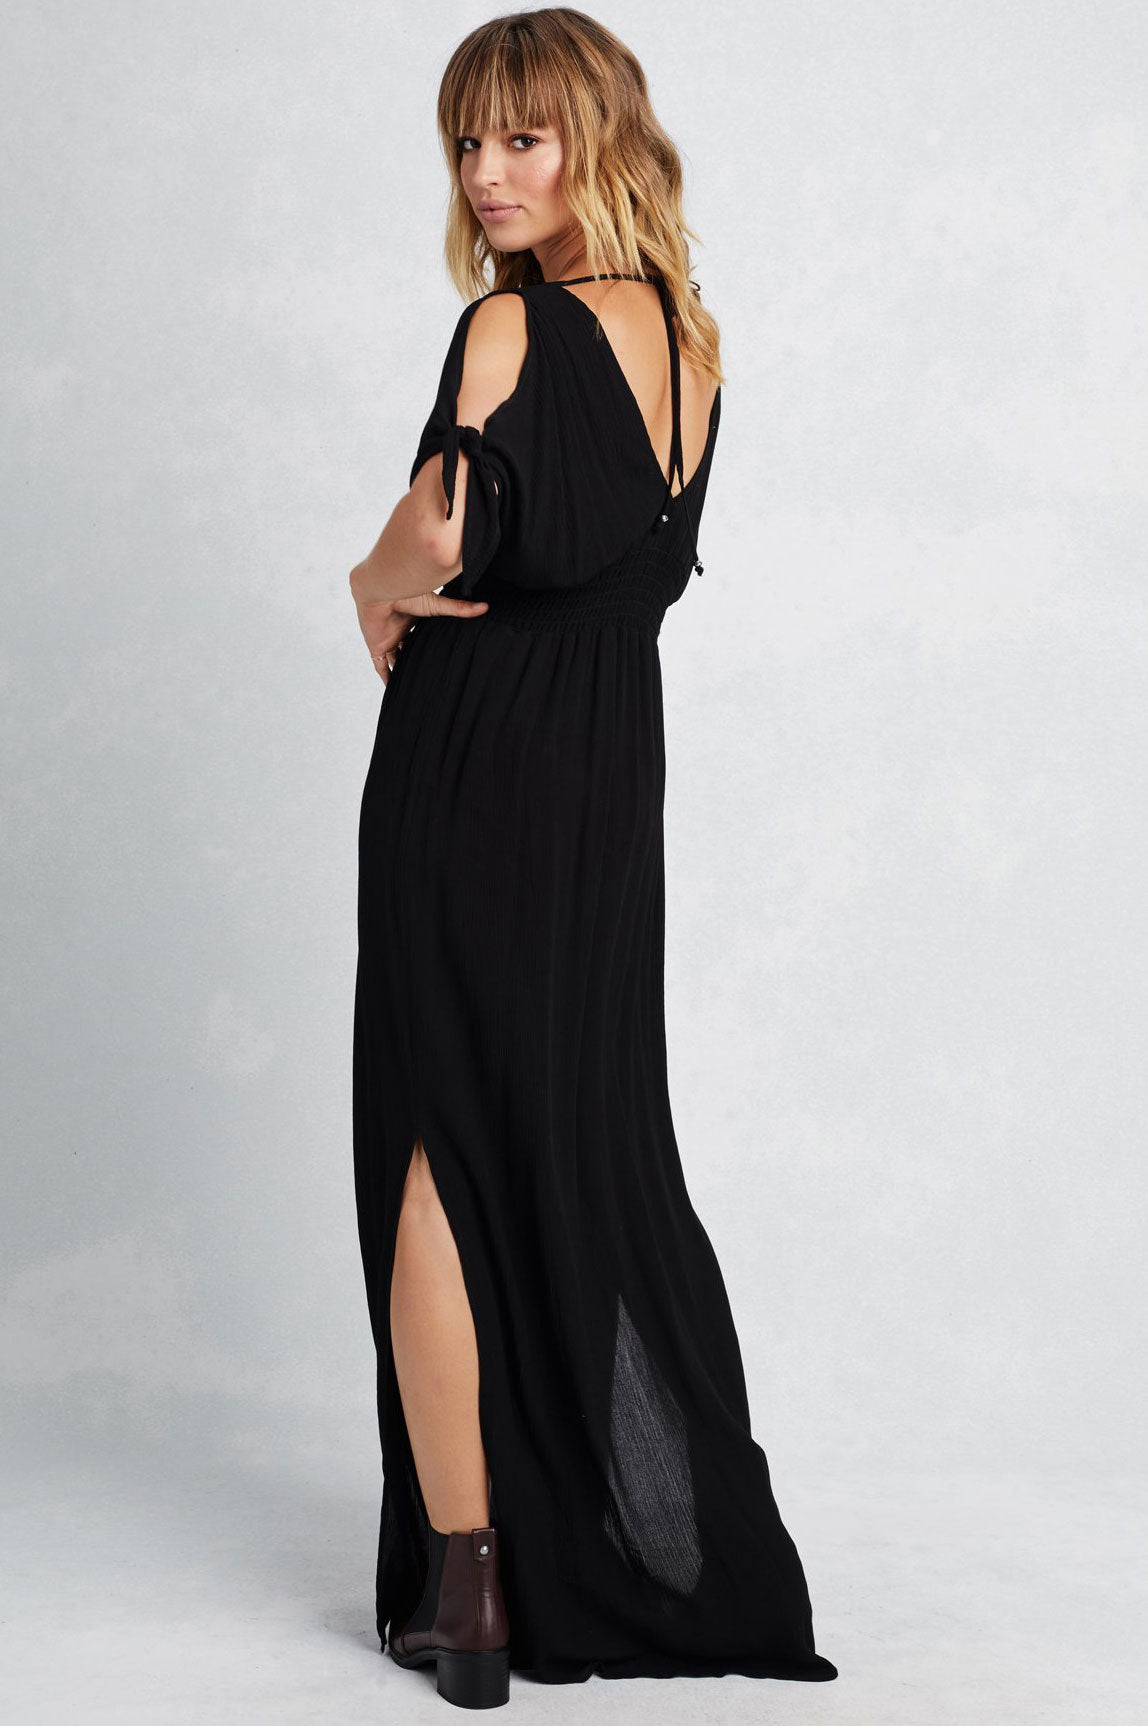 Long black maxi dress with short sleeves